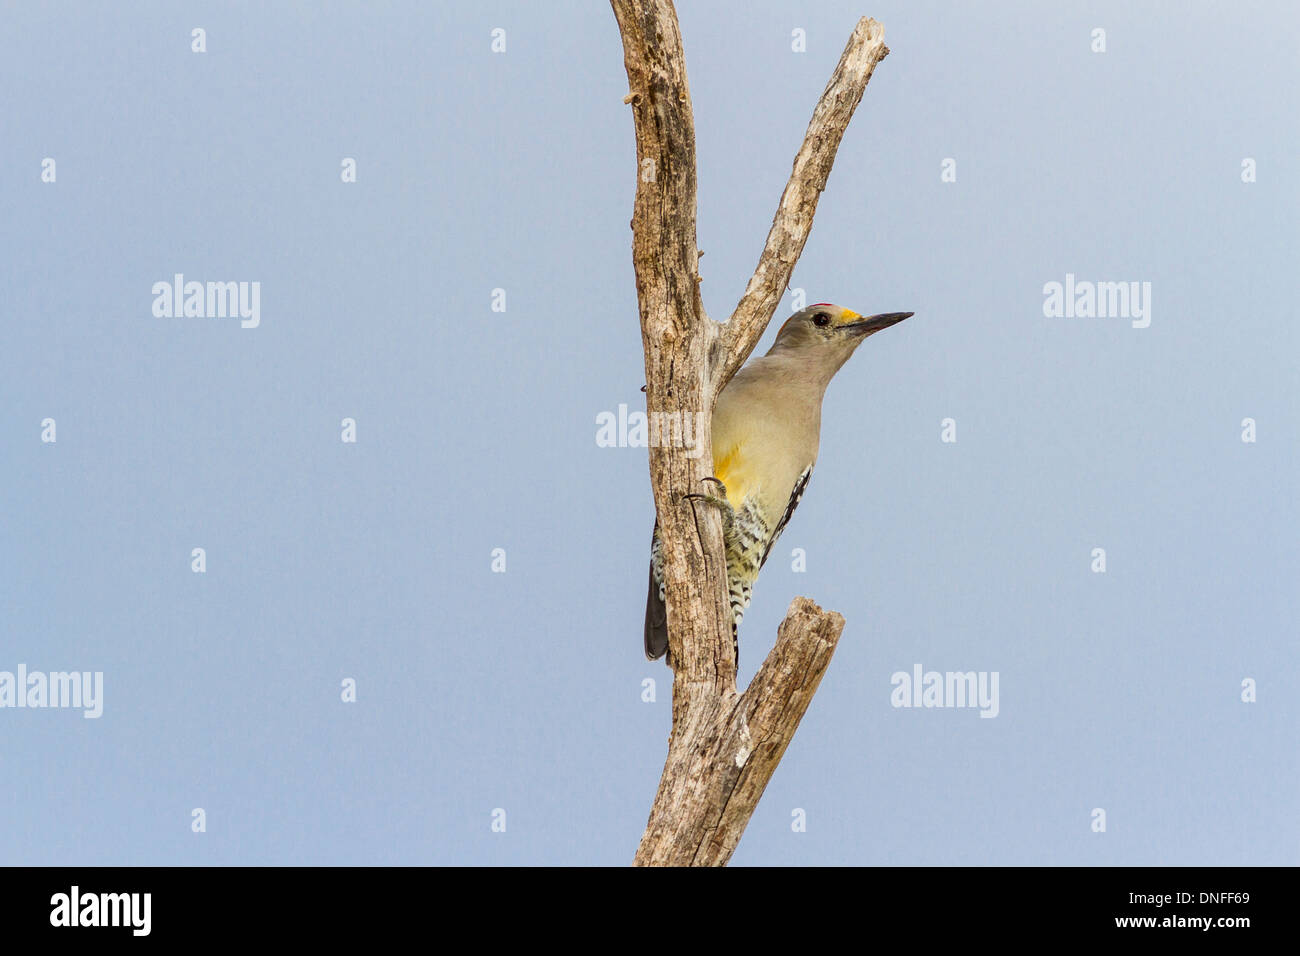 Golden-fronted Woodpecker, Melanerpes aurifrons, perched on tree limb at a ranch near Laredo, Texas. Stock Photo